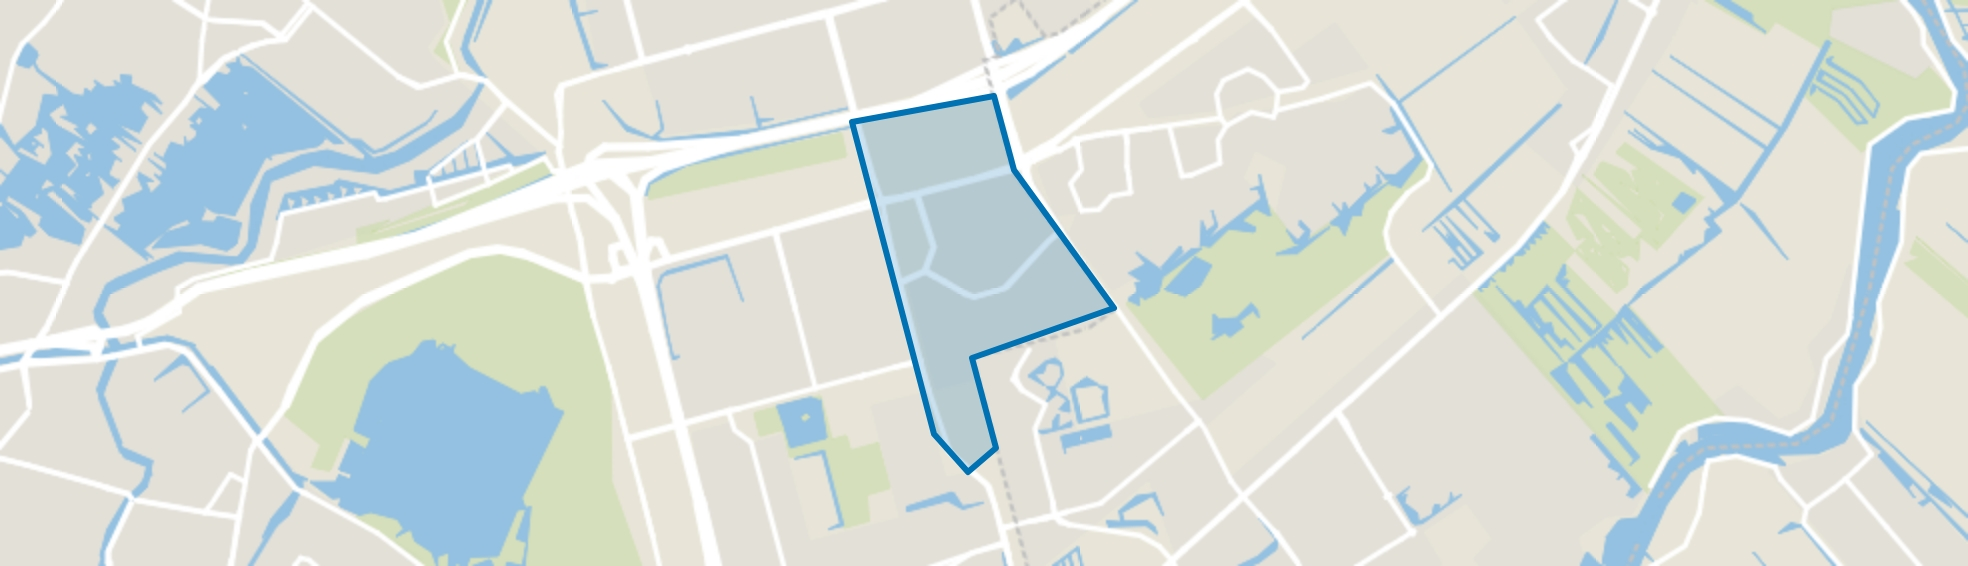 Oosterflank, Rotterdam map